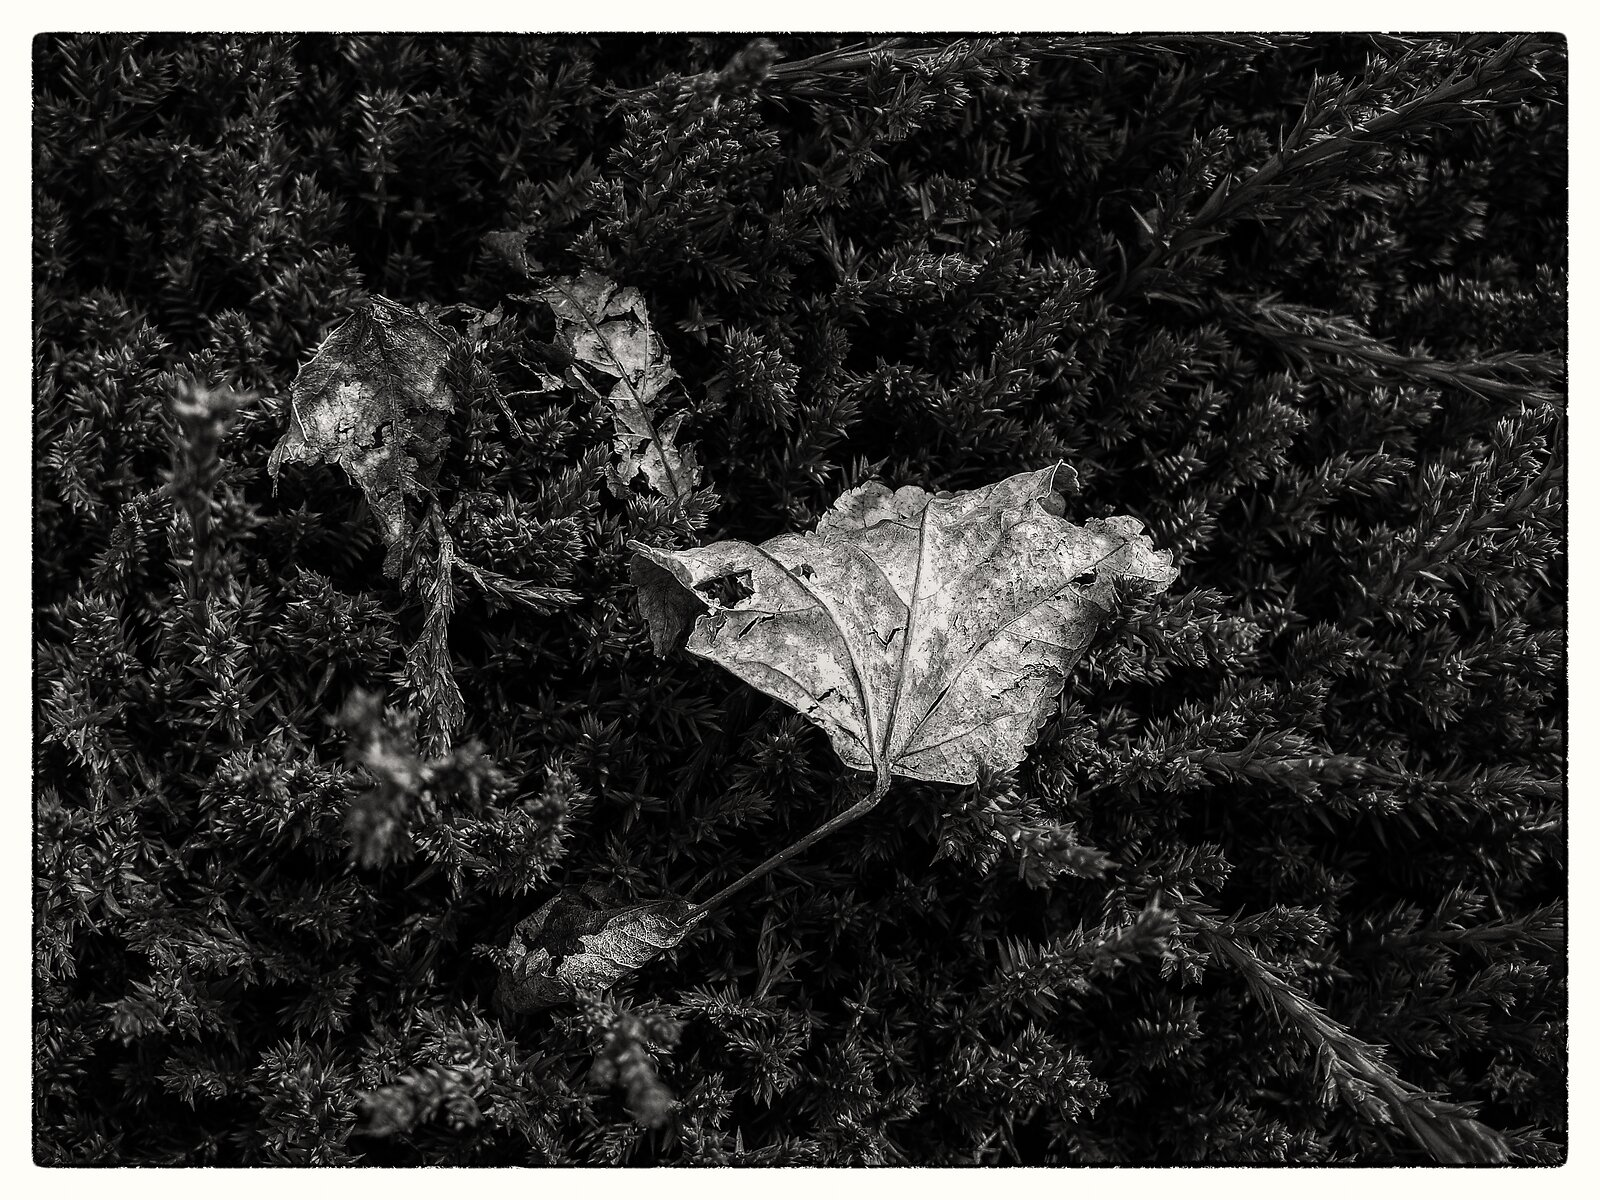 Q7_Mar8_21_leaf_on_hedge.jpg